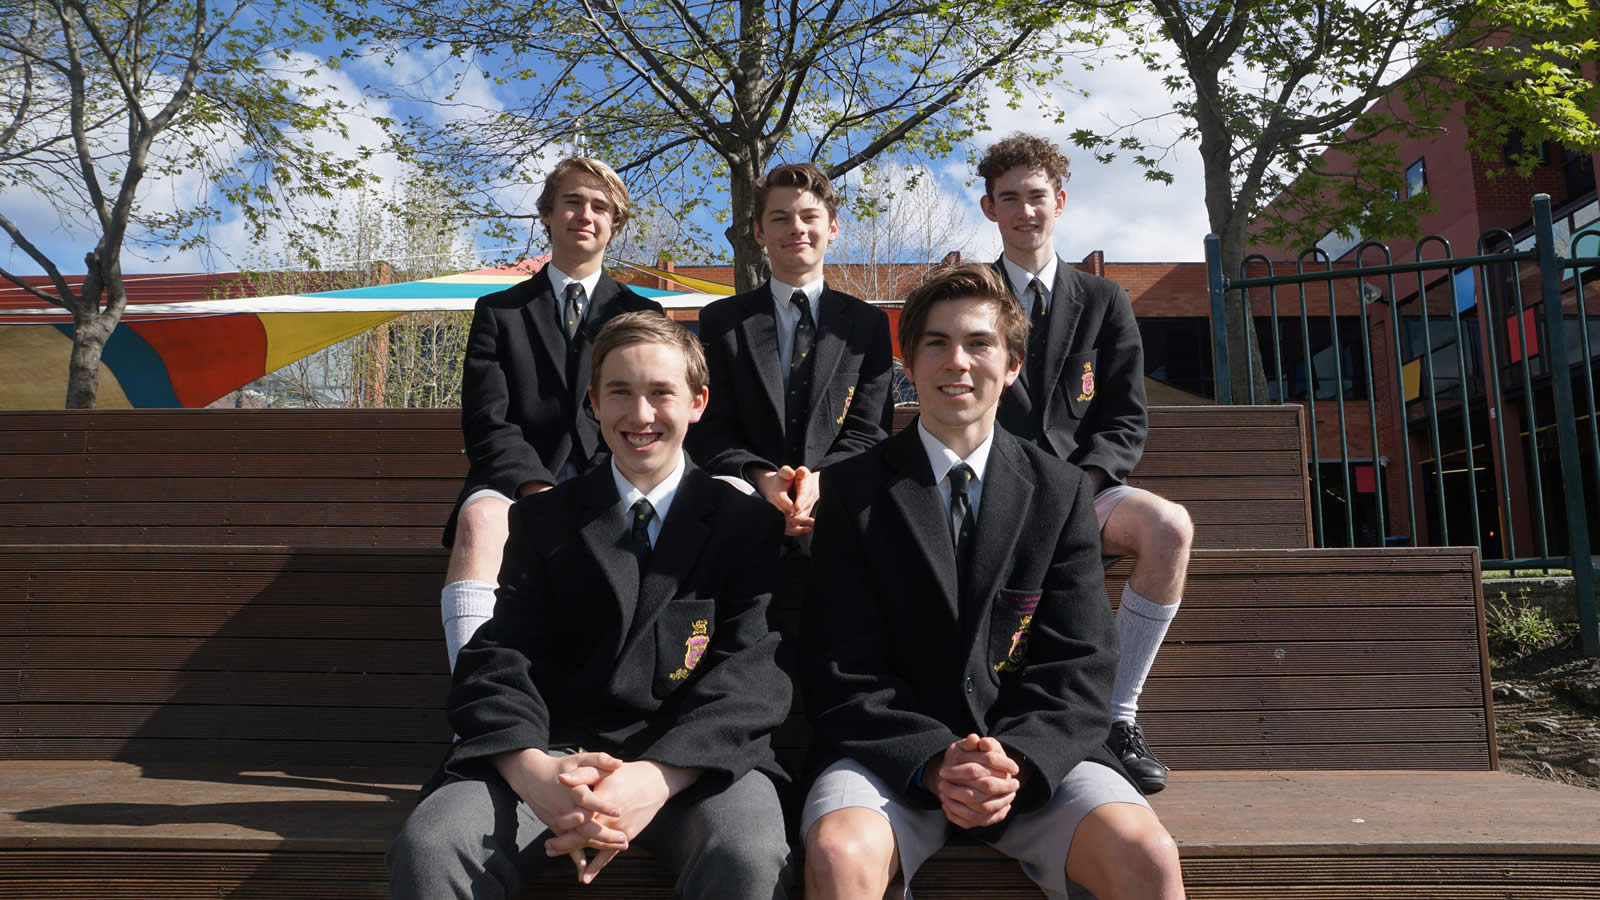 Back row L–R Fergus Charles, Charles Moss, Alexander Titchen. Front row L–R Joseph Bailey, Harvey Chilcott. (large)